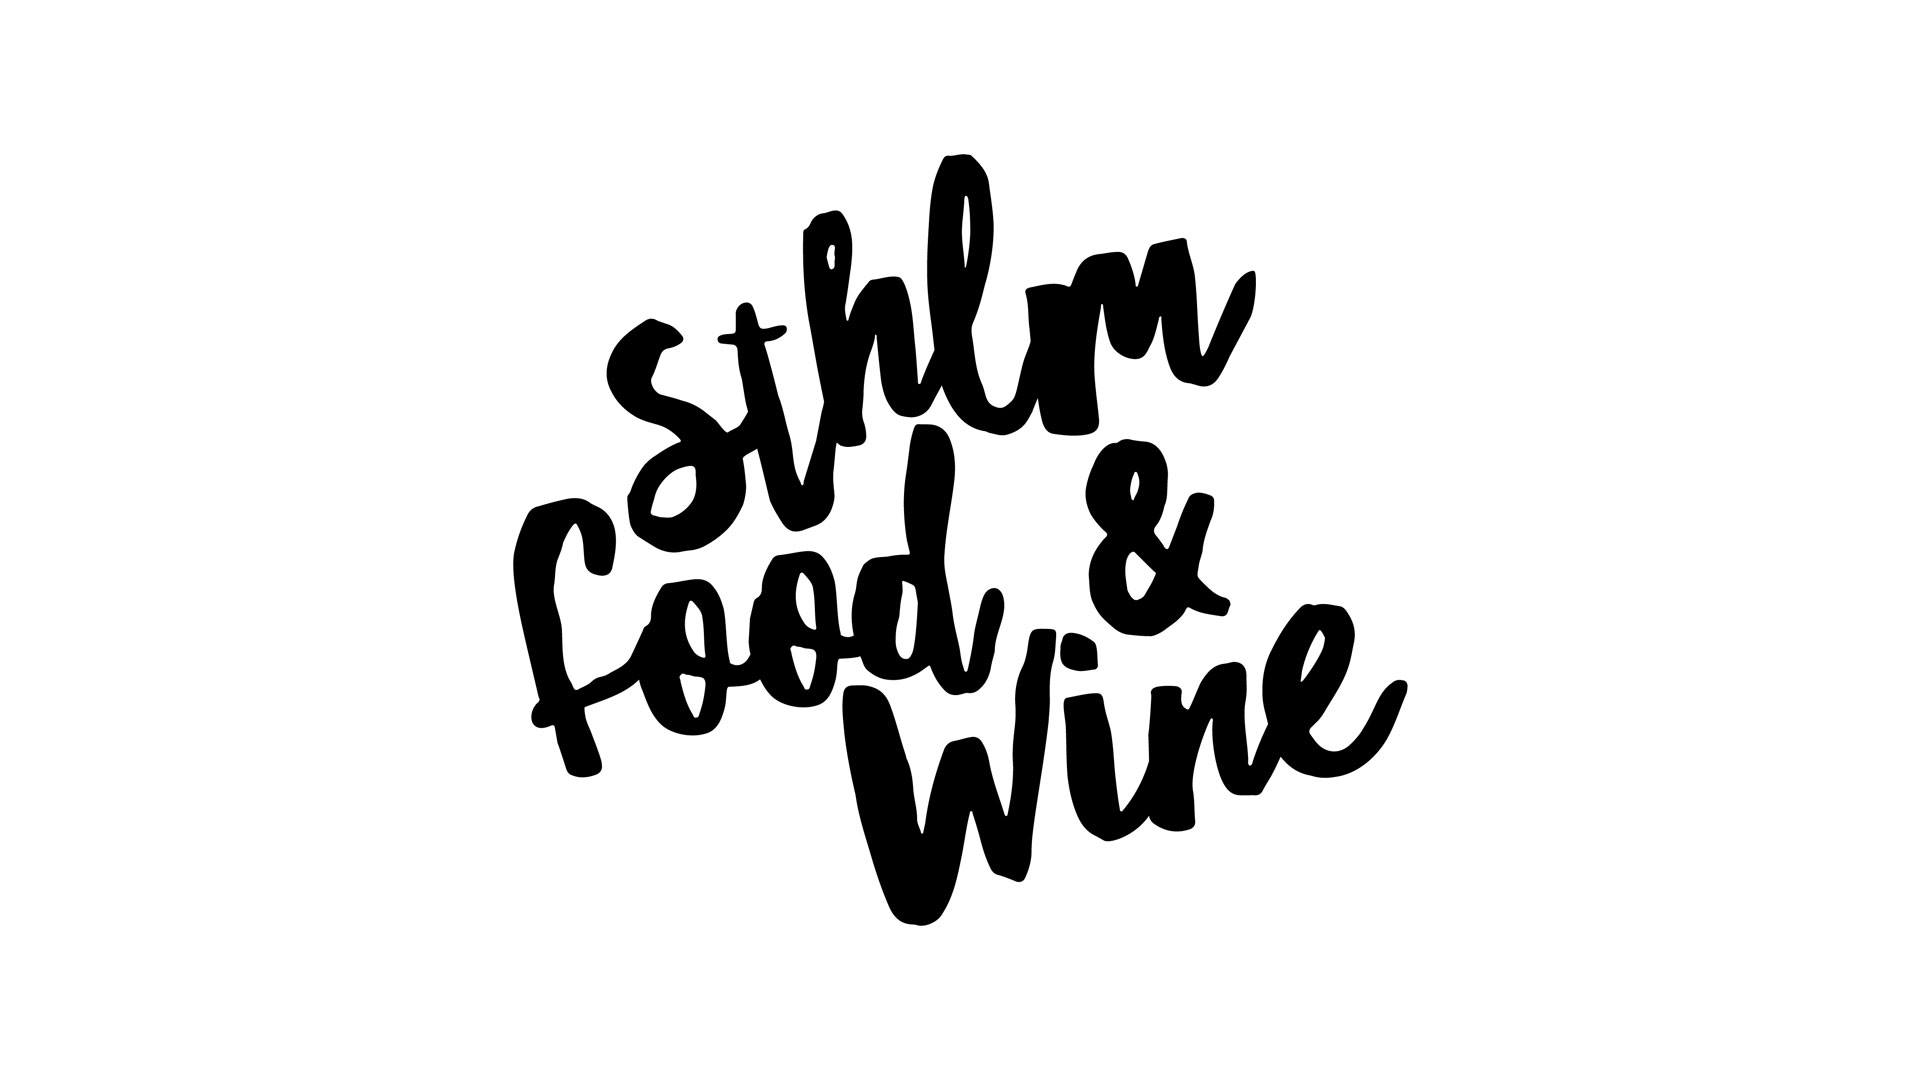 Sthlm food & wine 2018